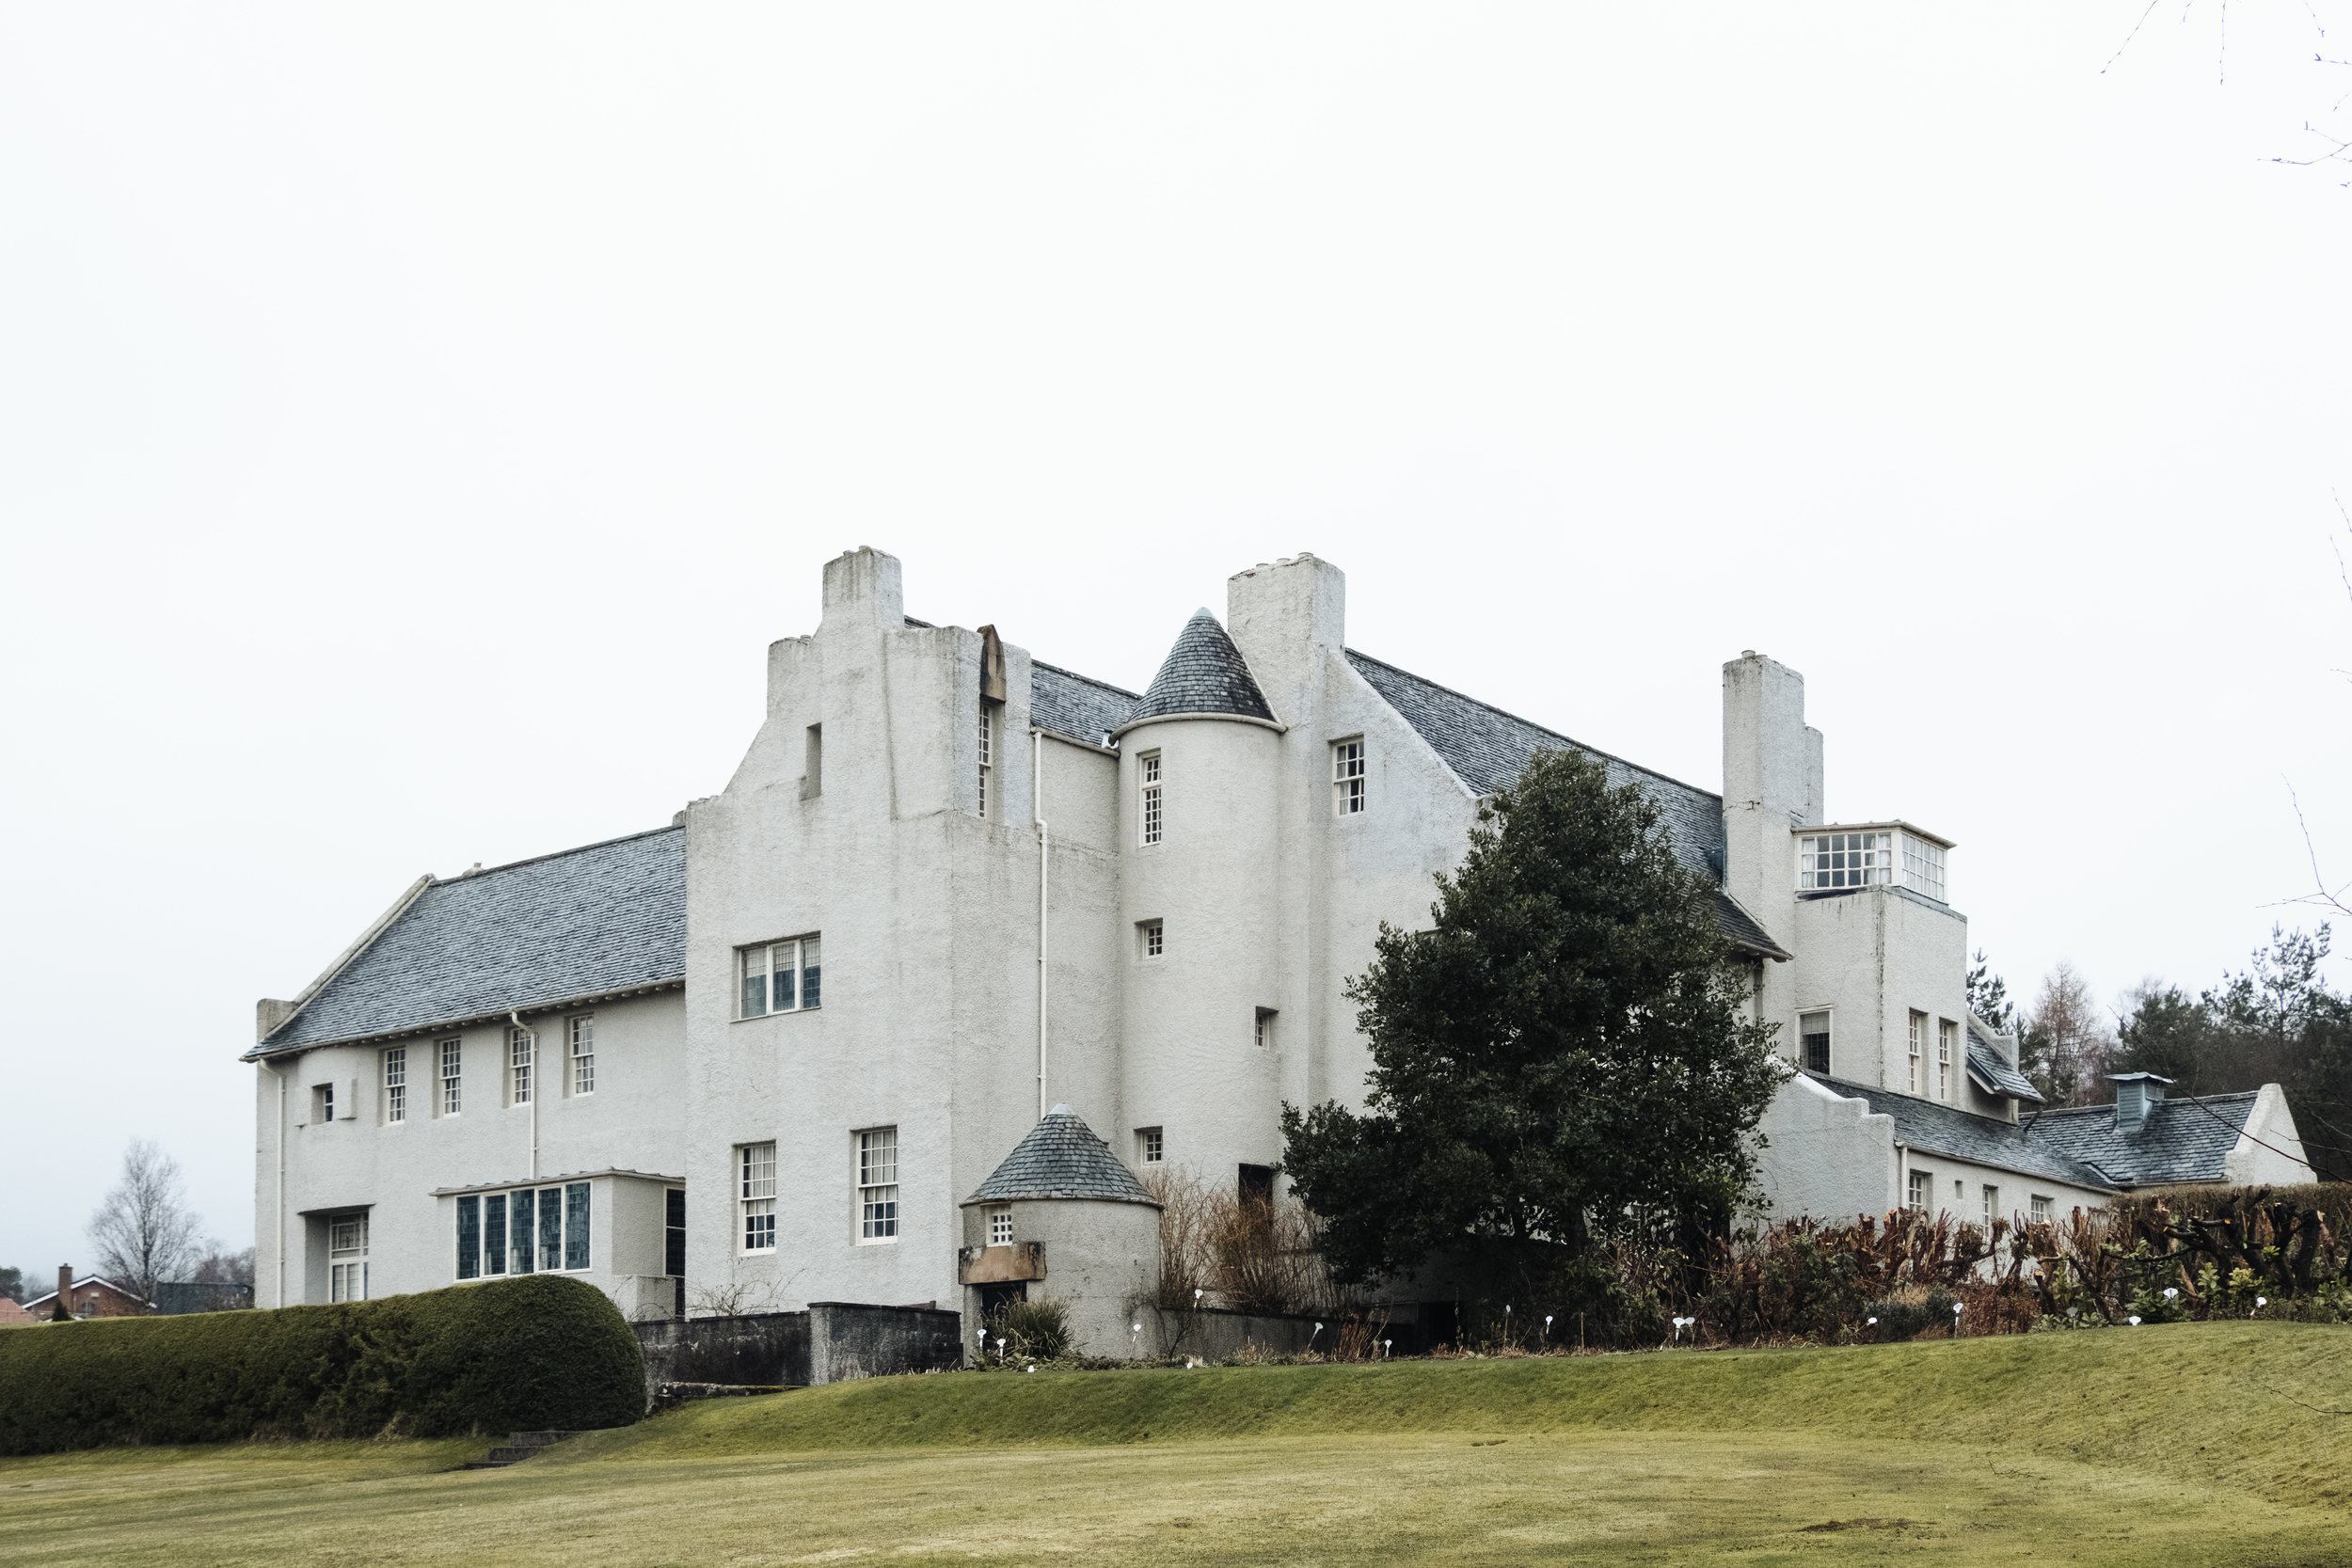 The Hill House by C.R.Mackintosh